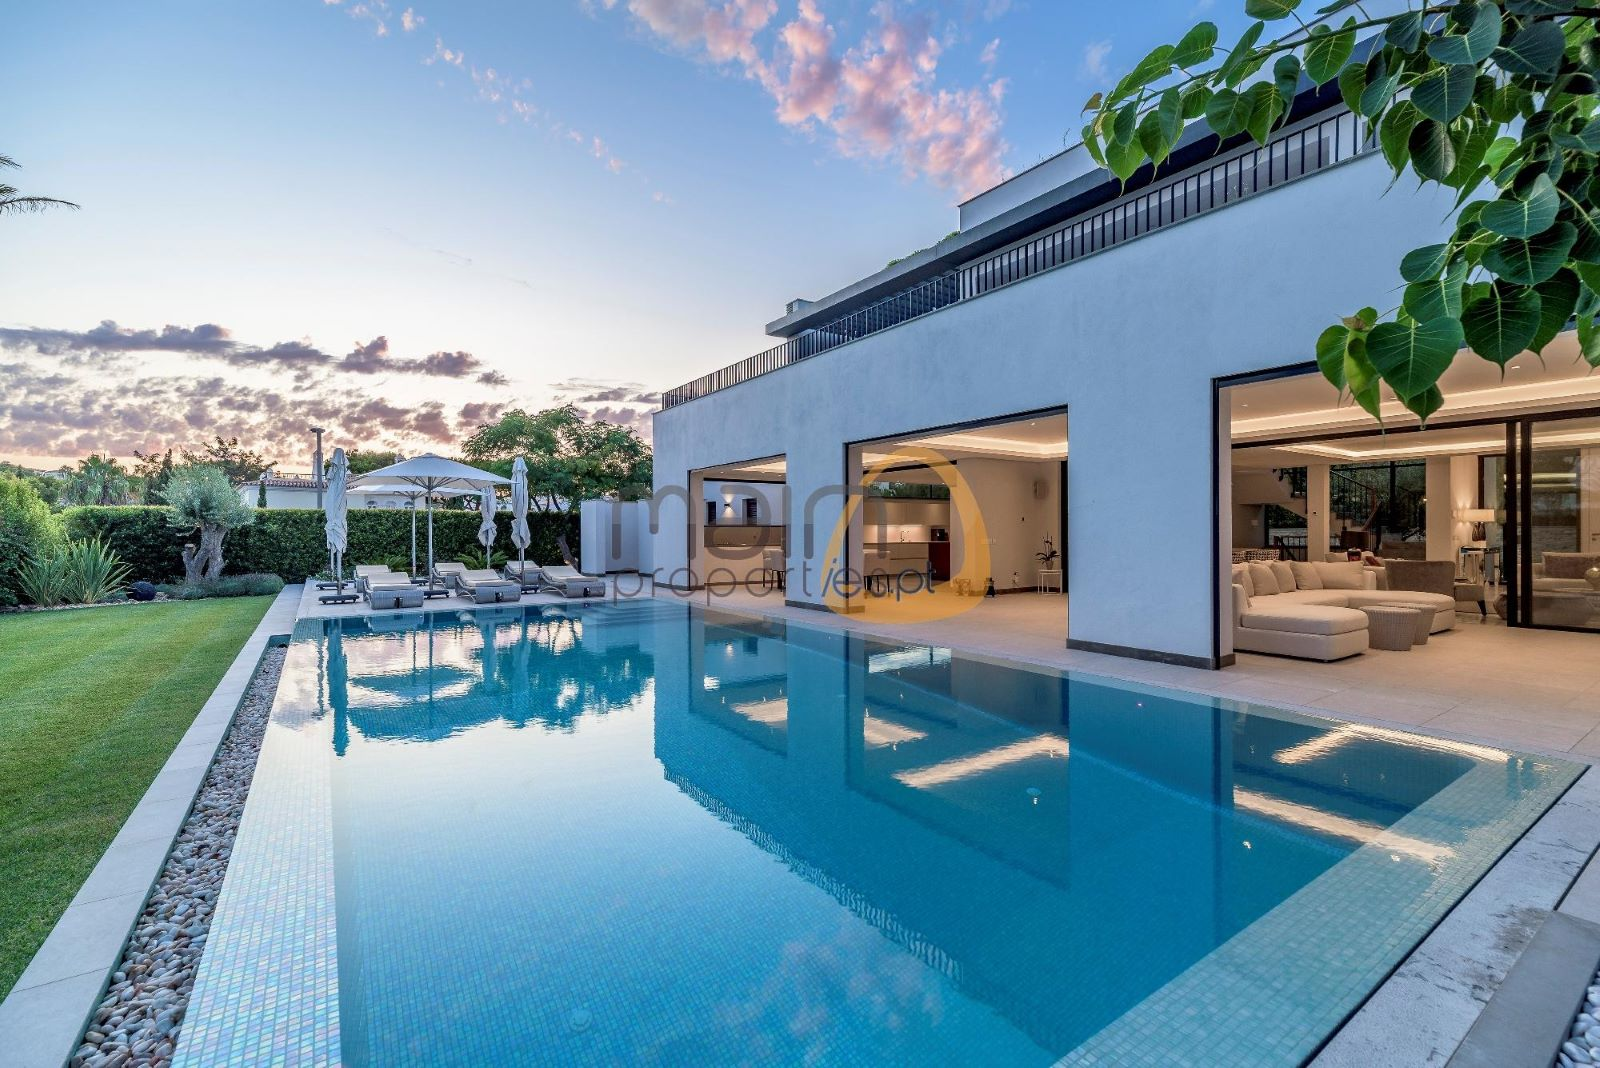 Brand new luxury 5 bedroom villa near the beach of Dunas Douradas in Vale do Lobo